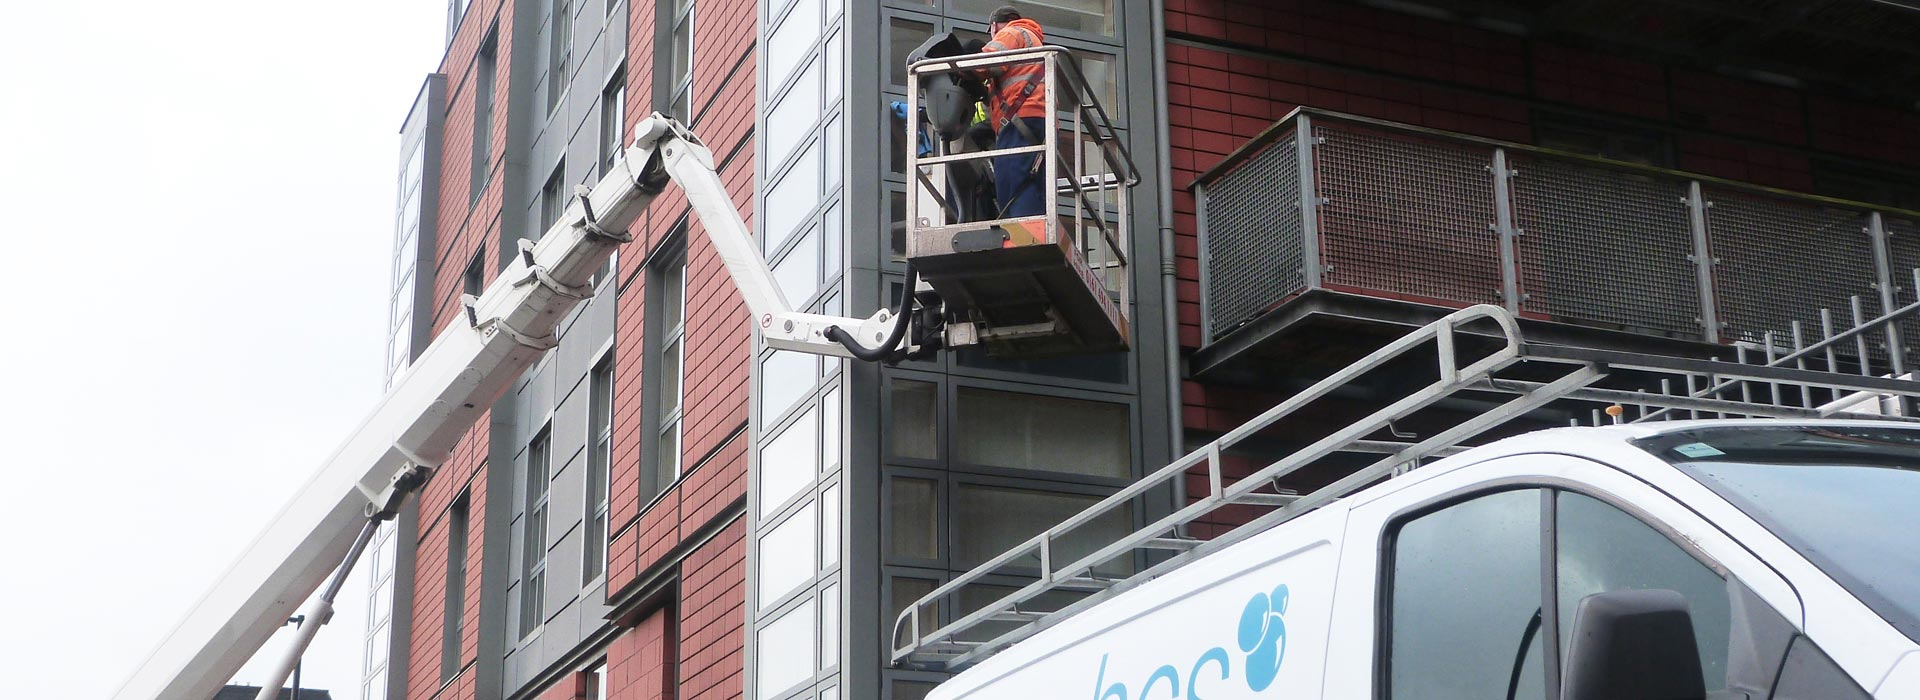 High Level Window Cleaning in Manchester and the North West - HCS Cleaning Services